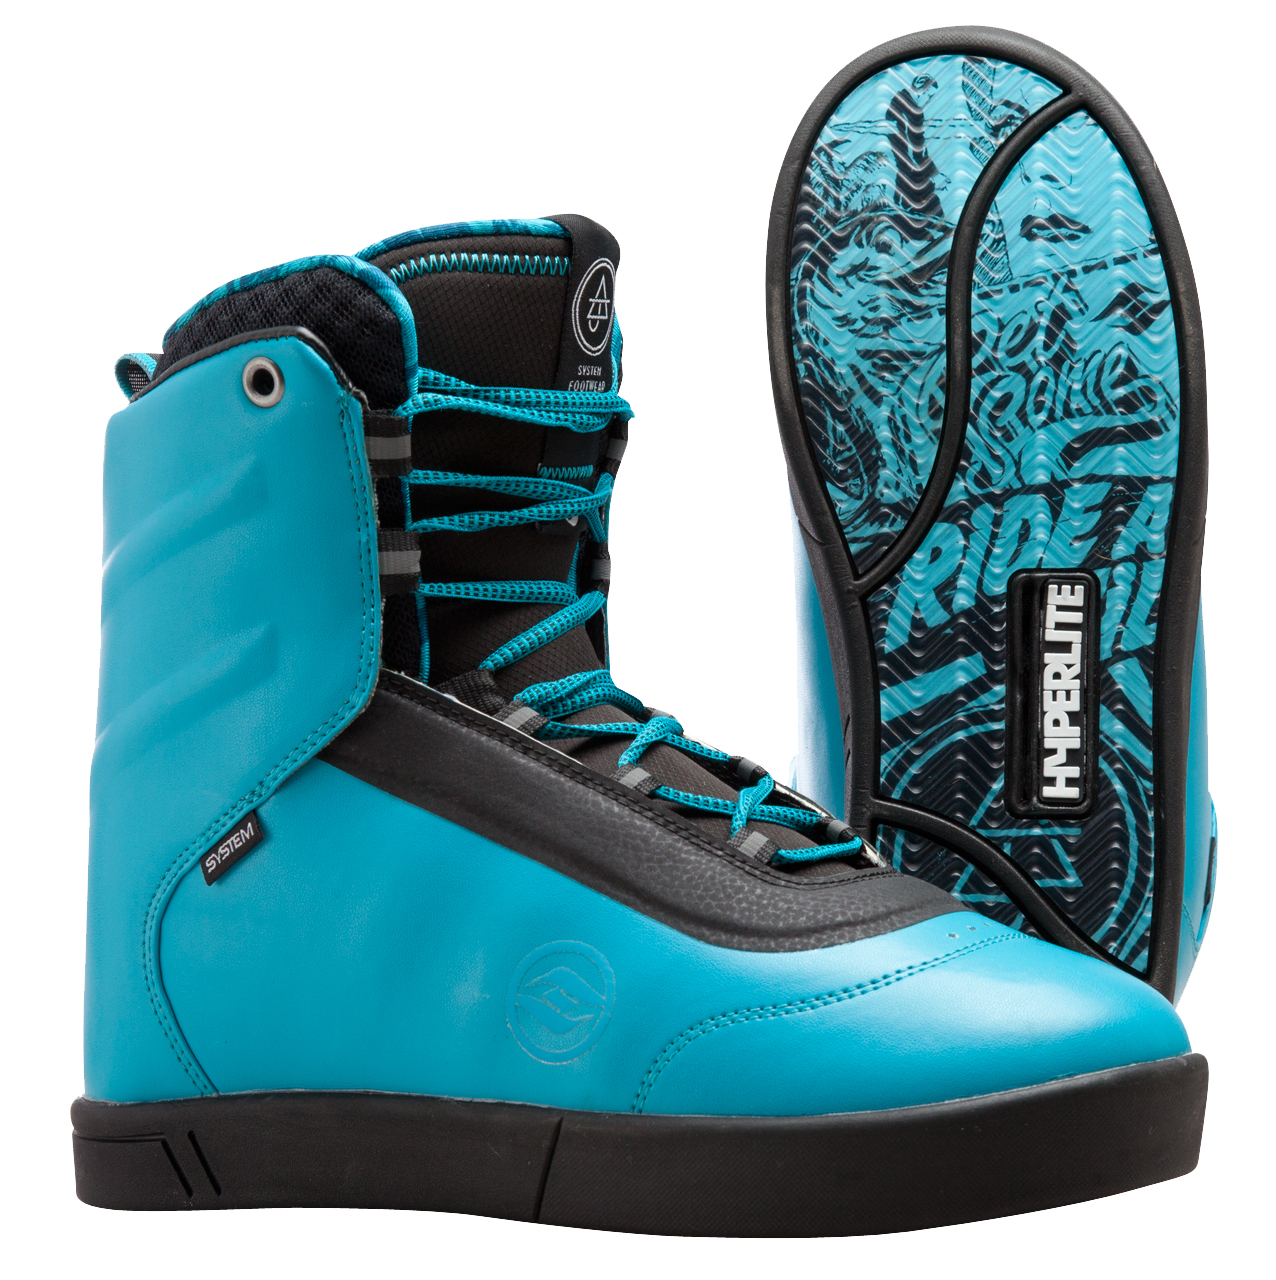 AJ SYSTEM BOOT - BLUE HYPERLITE 2016